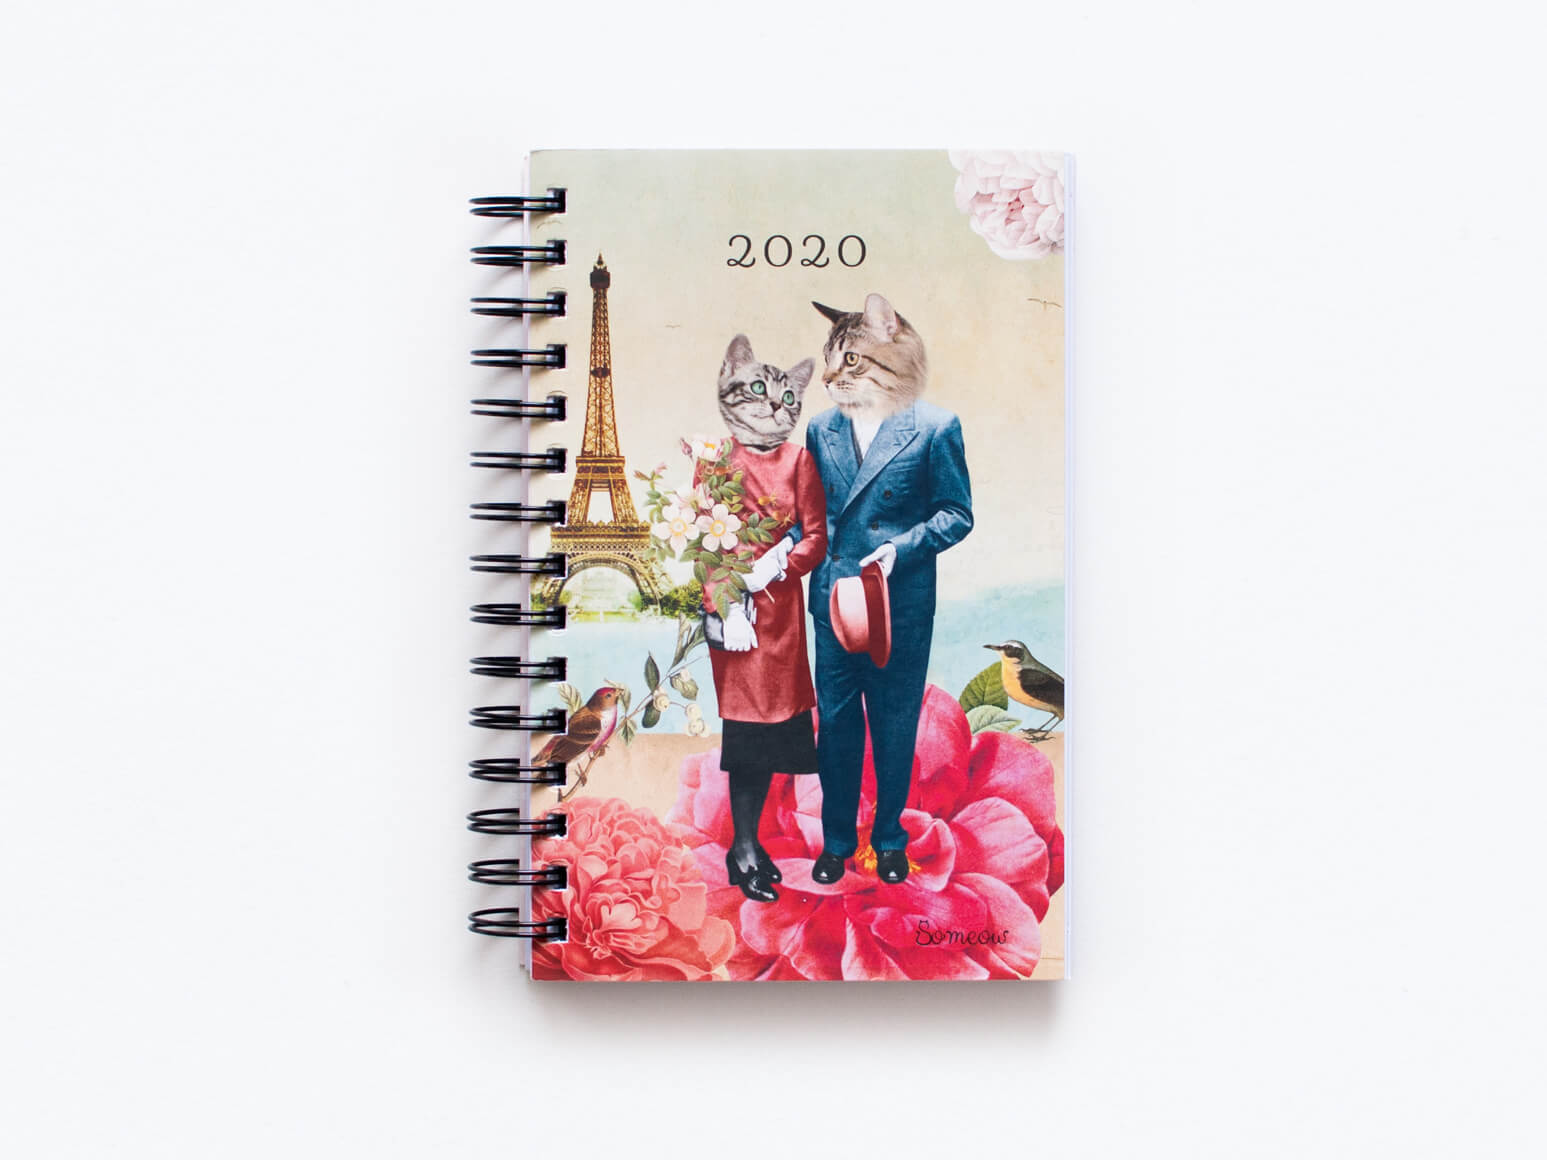 Agenda chat 2020 Les amoureux à Paris par So Meow